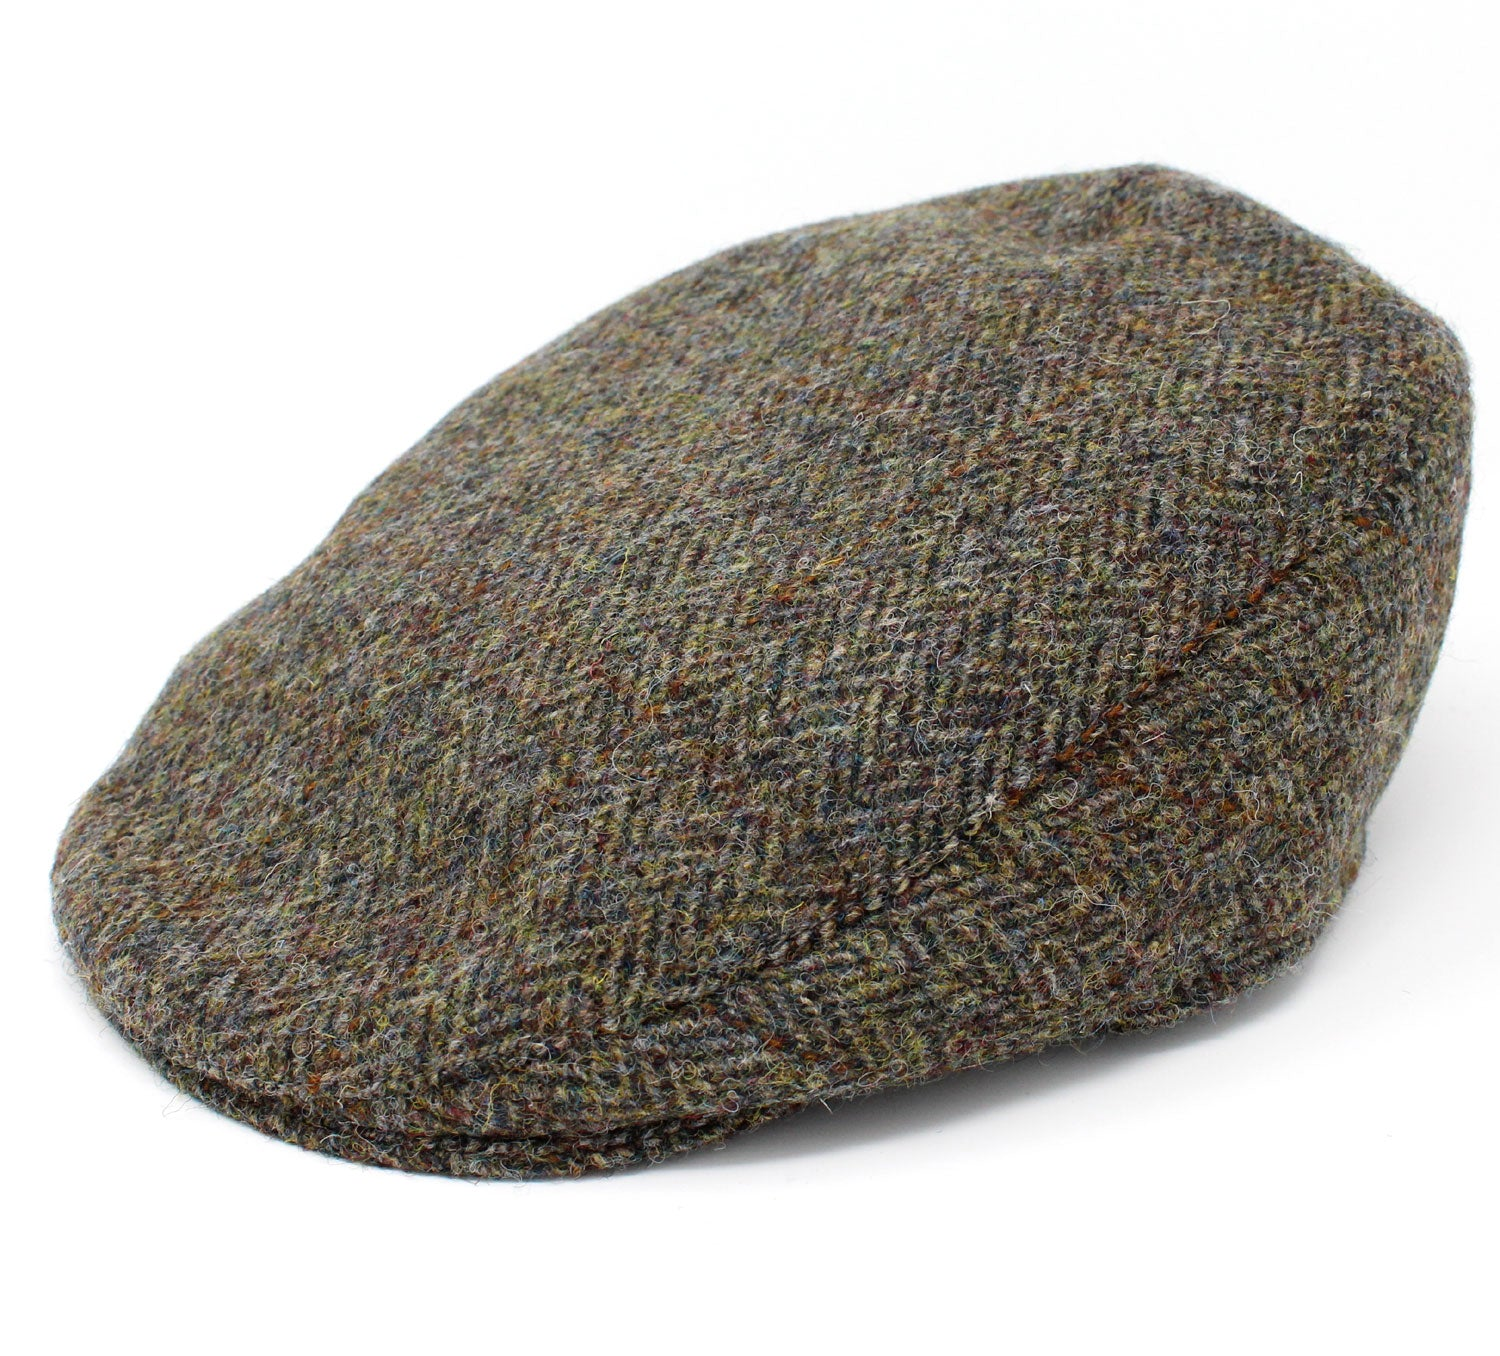 Hanna Tailor Tweed Cap | Green Herringbone